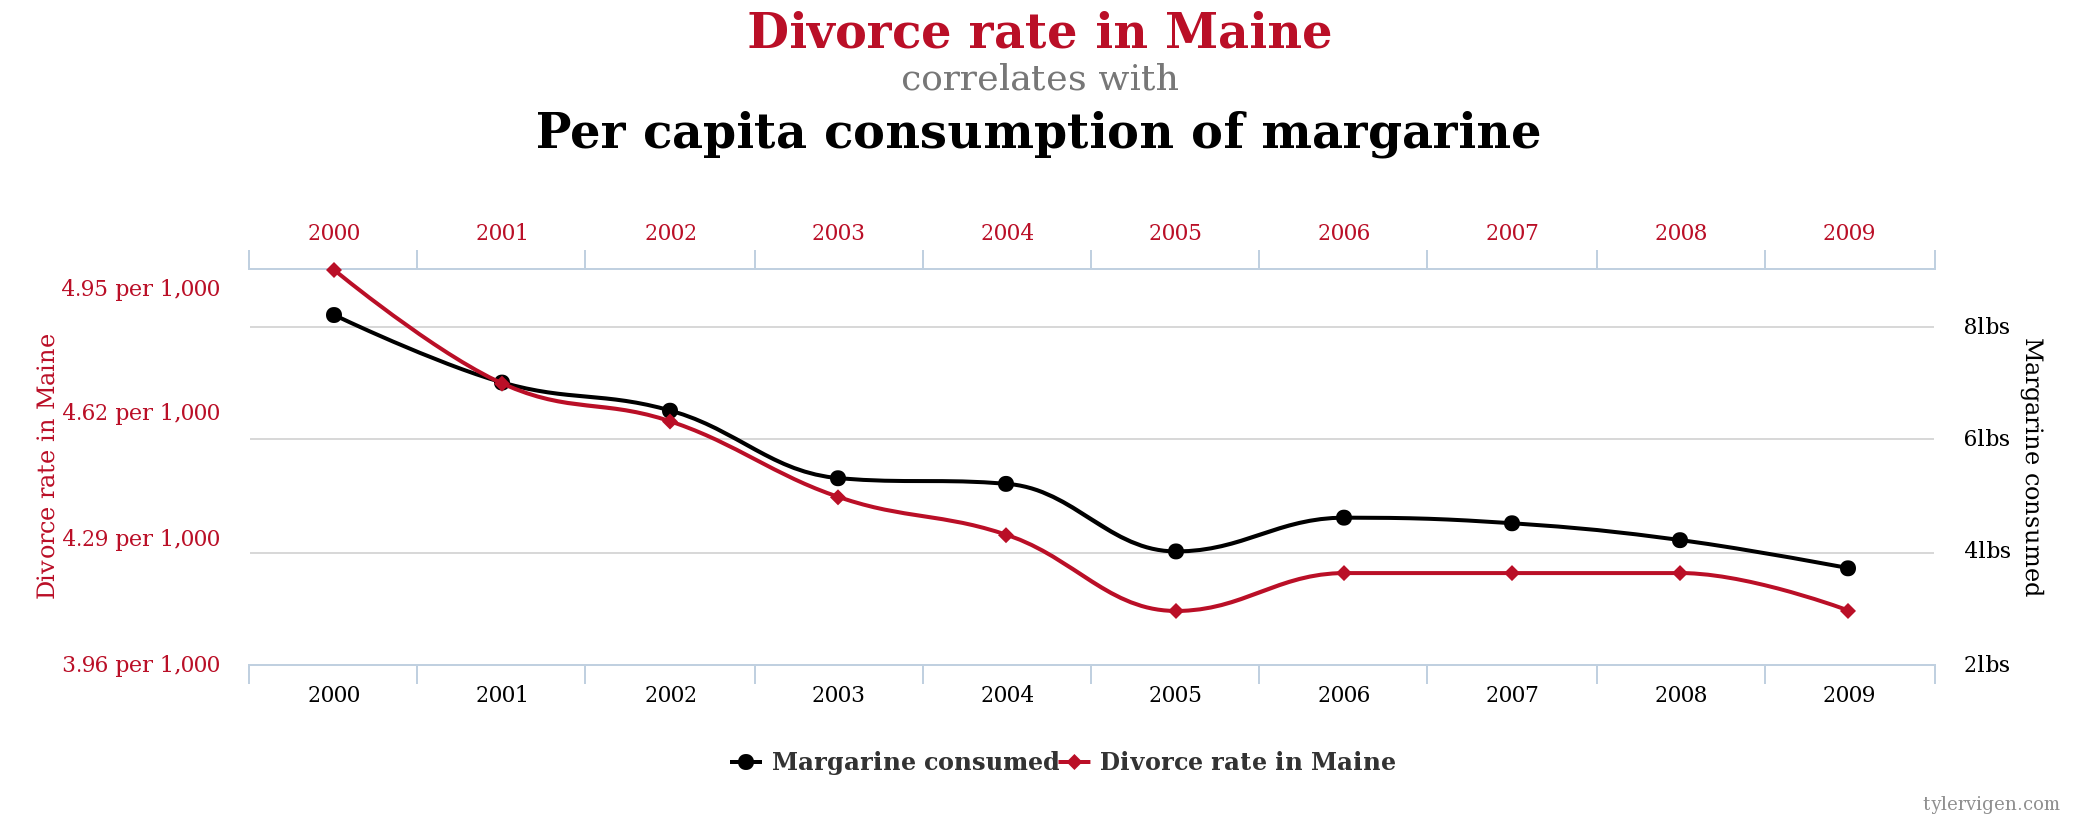 Divorce rate in Maine correlates with Per capita consumption of margarine